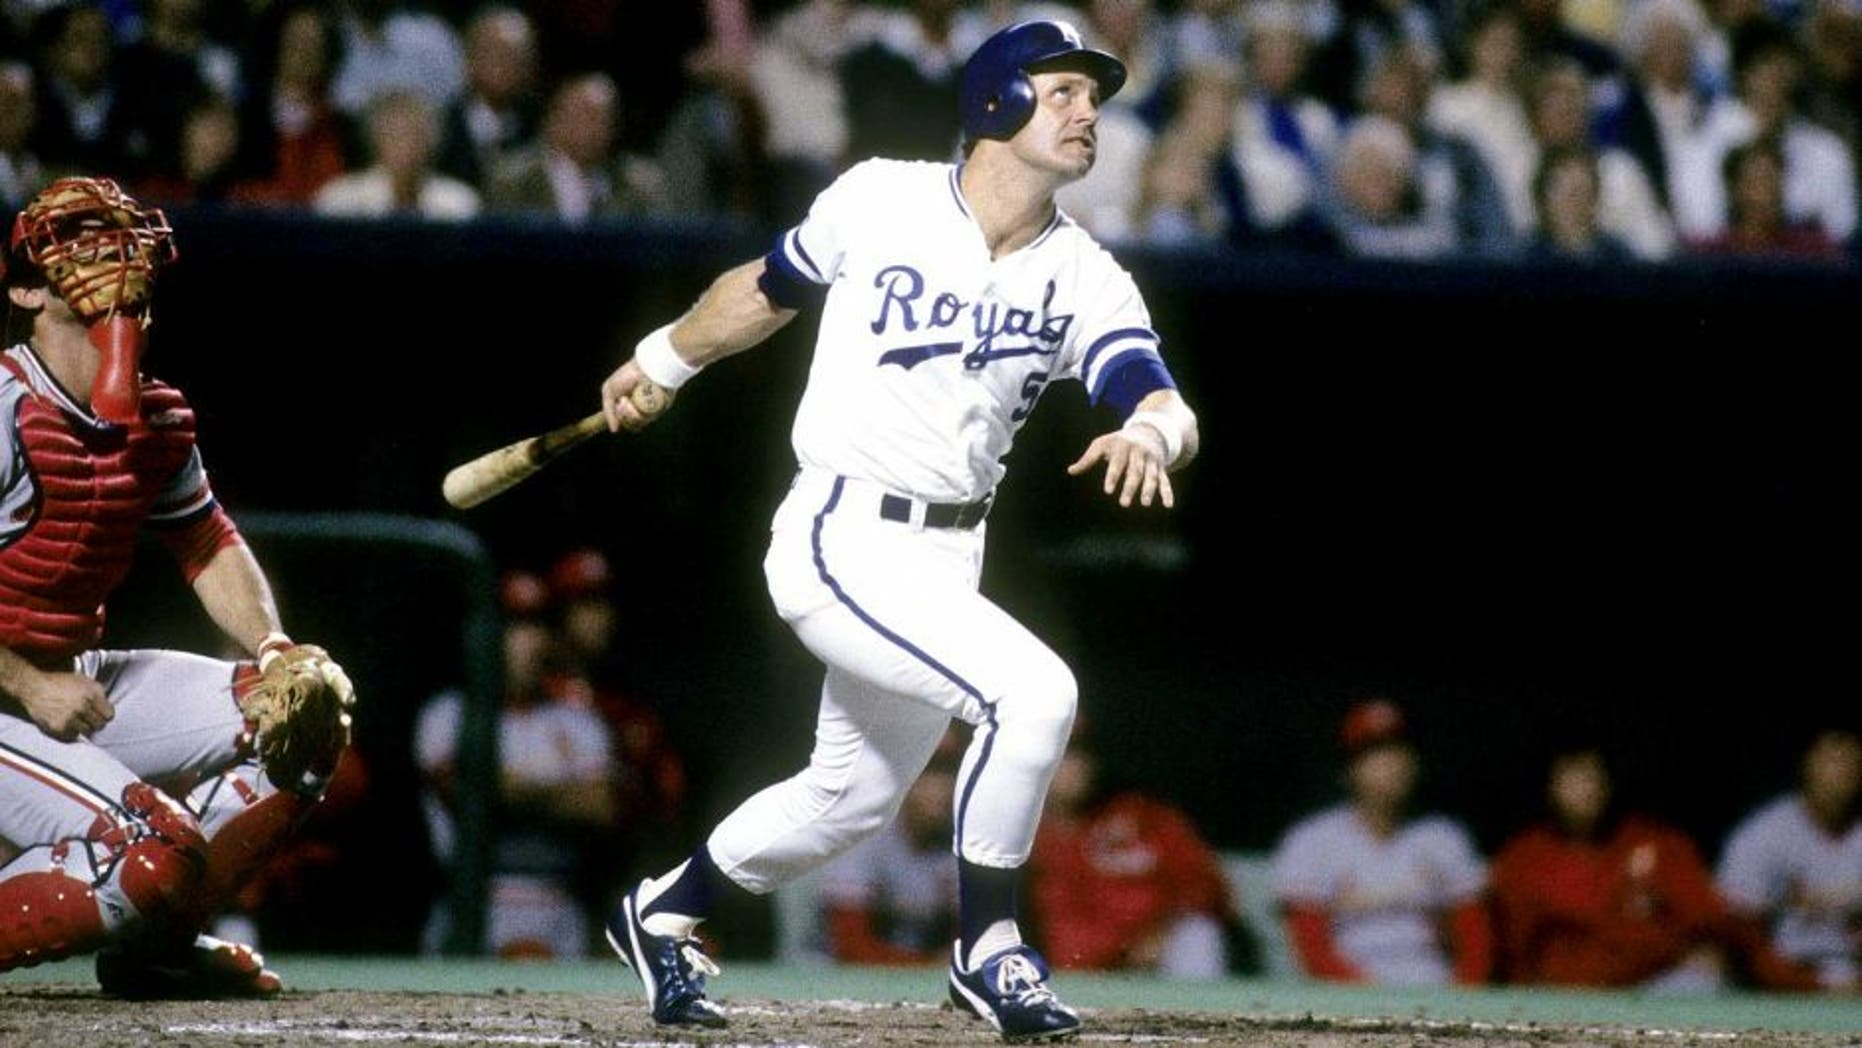 KANSAS CIT, MO - OCTOBER, 1985: Third baseman George Brett #5 swings and watches the flight of his ball against the St. Louis Cardinals in the World Series, October, 1985 at Royals Stadium in Kansas City, Missouri. The Royals won the series 4 games to 3. Brett played for the Royals from 1973-93. (Photo by Focus on Sport/Getty Images)